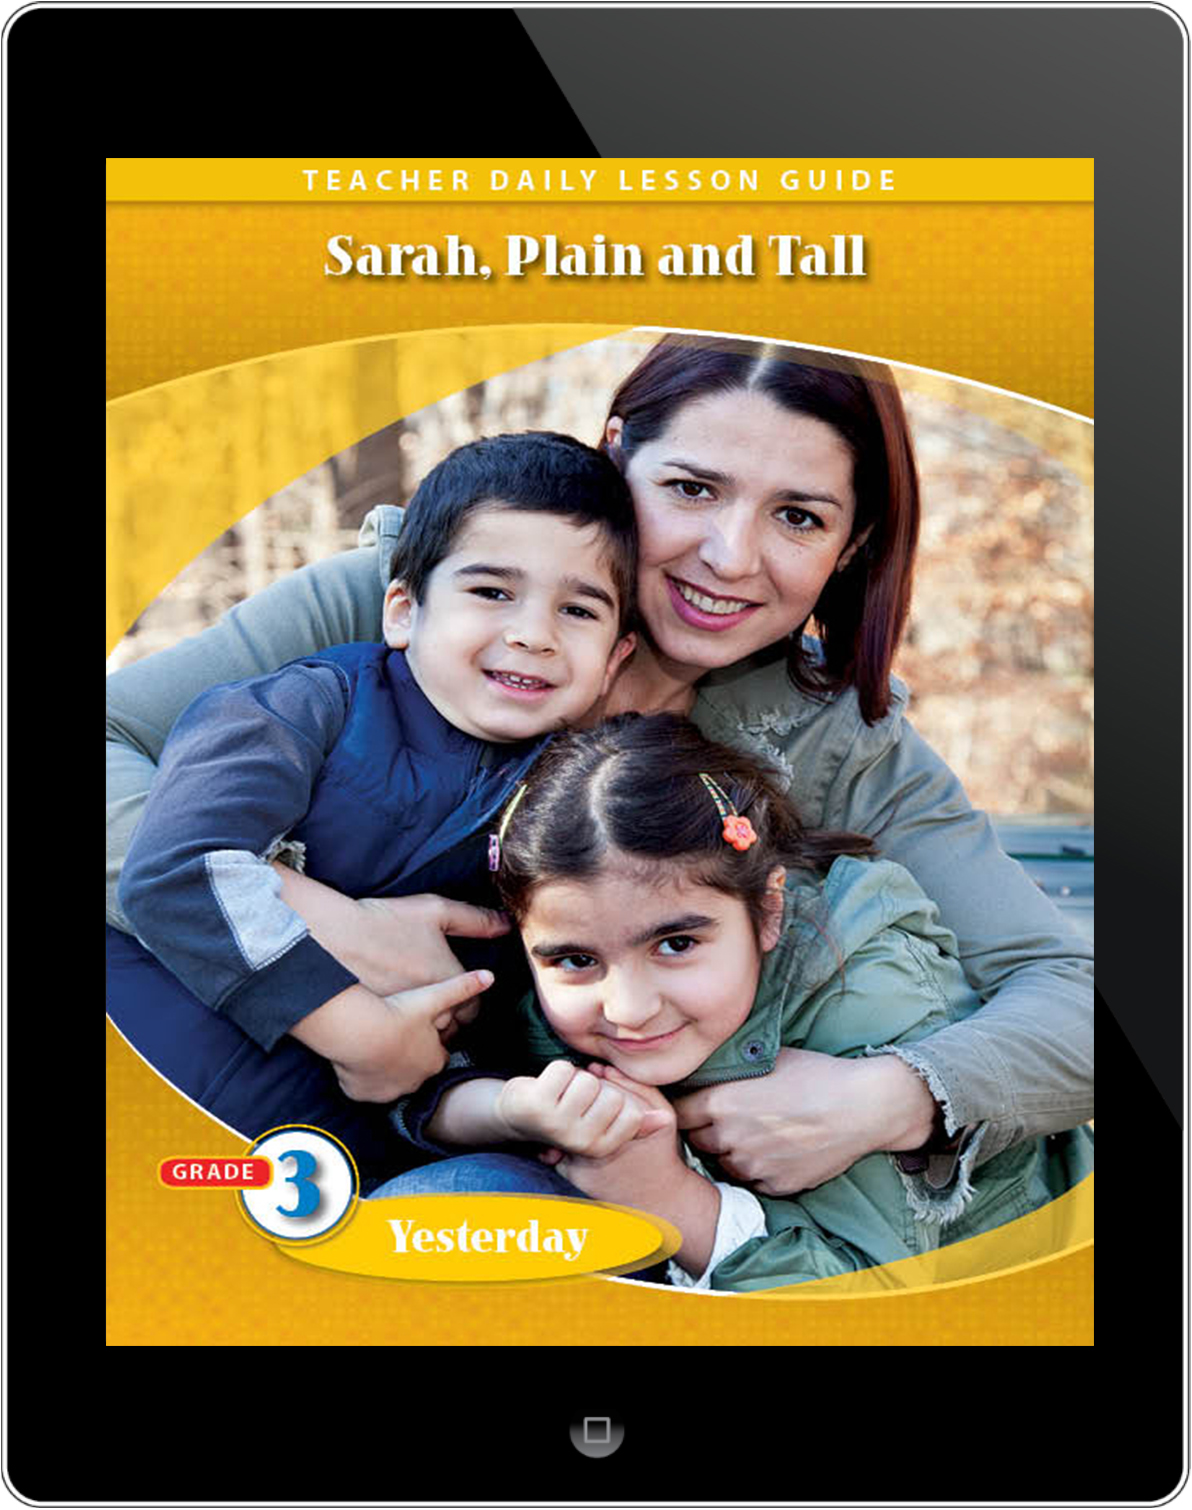 Pathways2.0 Grade 3 Yesterday Unit: Sarah: Plain & Tall Daily Lesson Guide 5 Year License